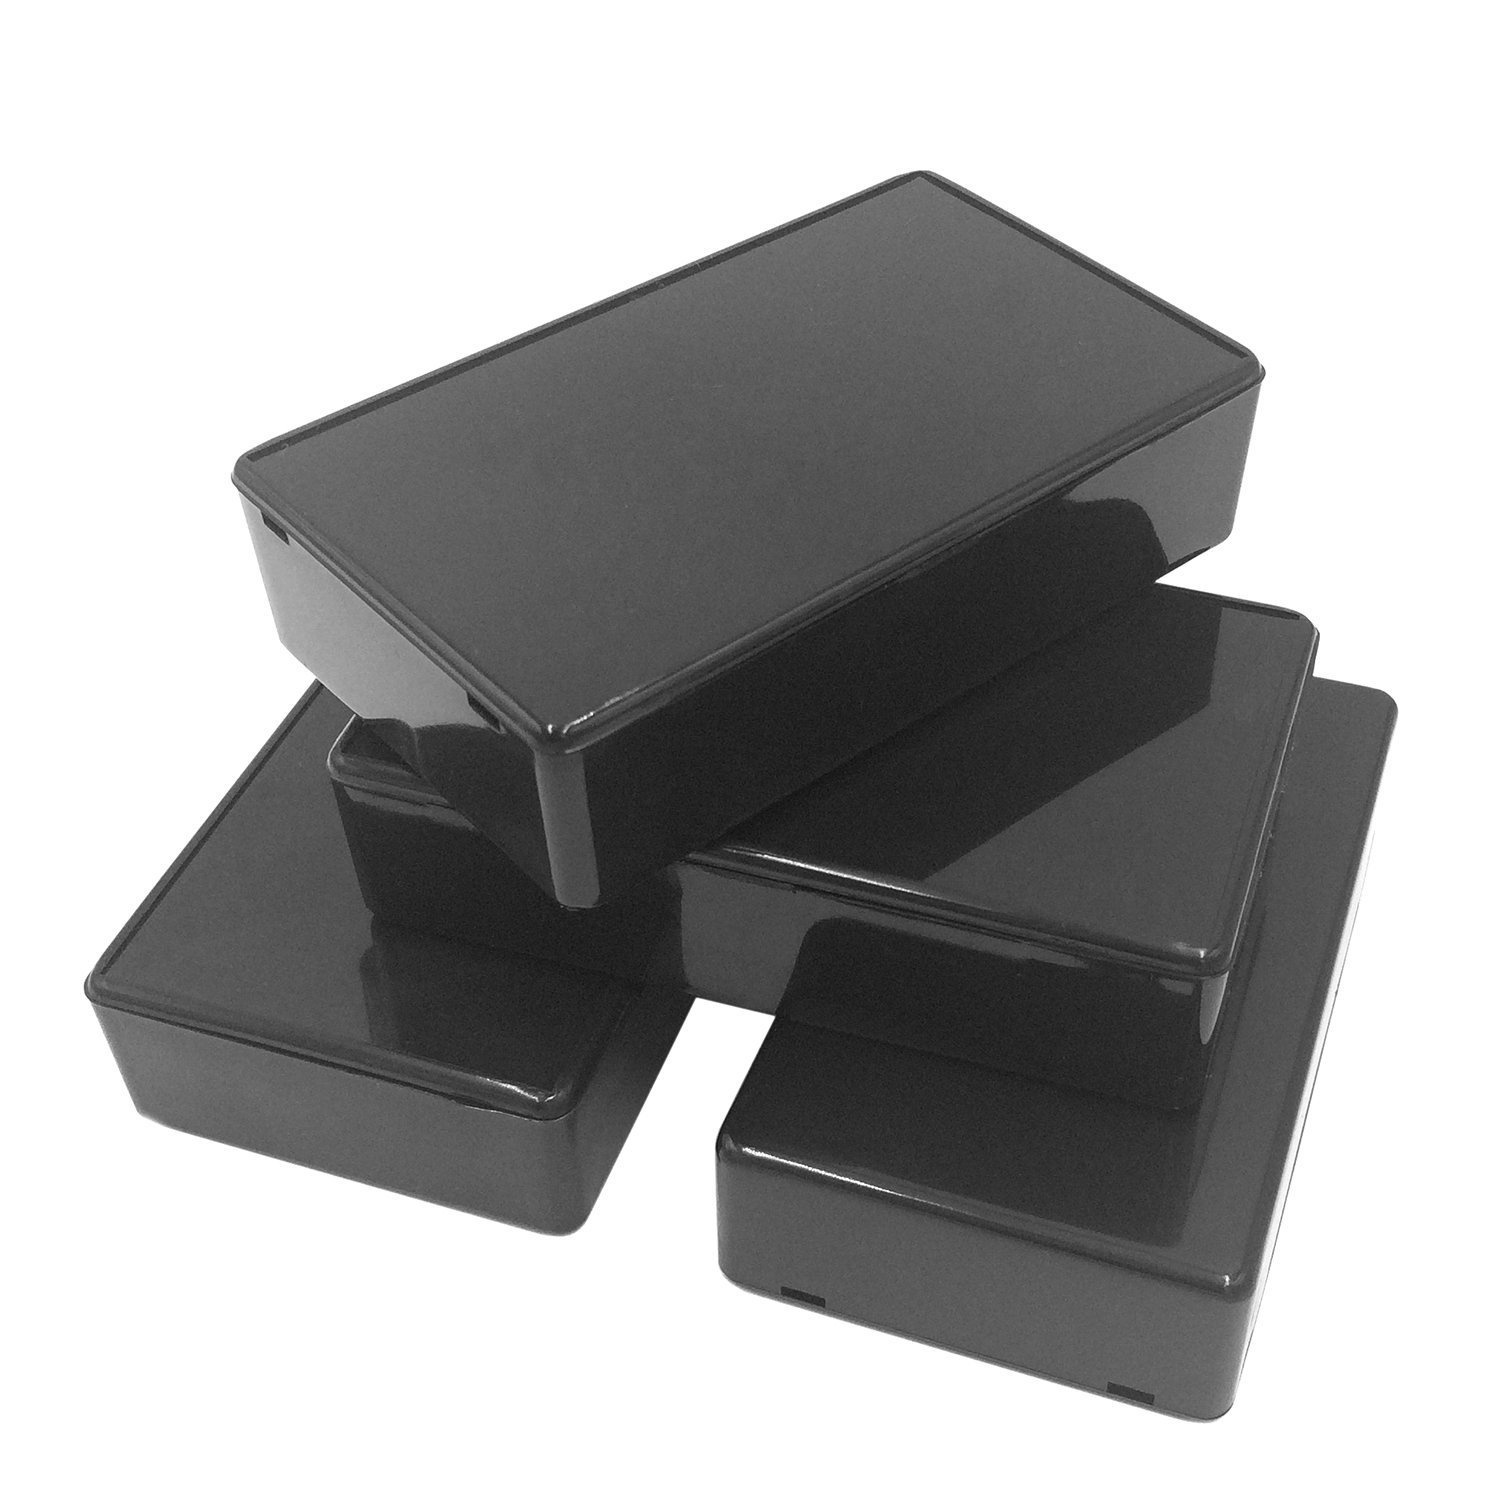 VNDEFUL 5Pcs Black Waterproof Plastic Electric Project Case Junction Box 3.94 x 2.36 x 0.98 inches(100x60x25mm).